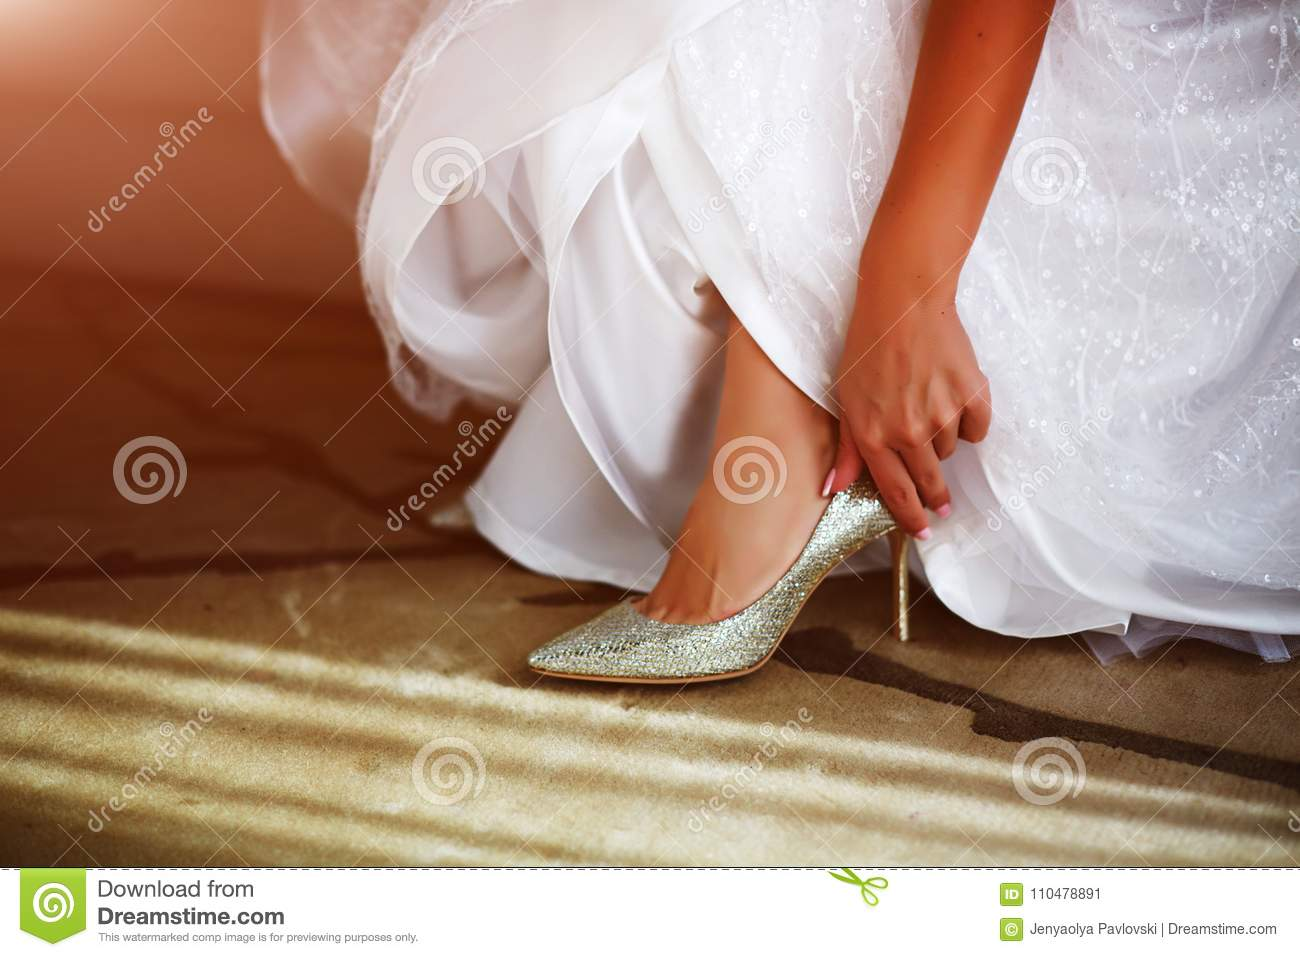 ff2ebe3a4ef3 Bride In White Wedding Dress Putting On Silver Shoes Stock Image ...